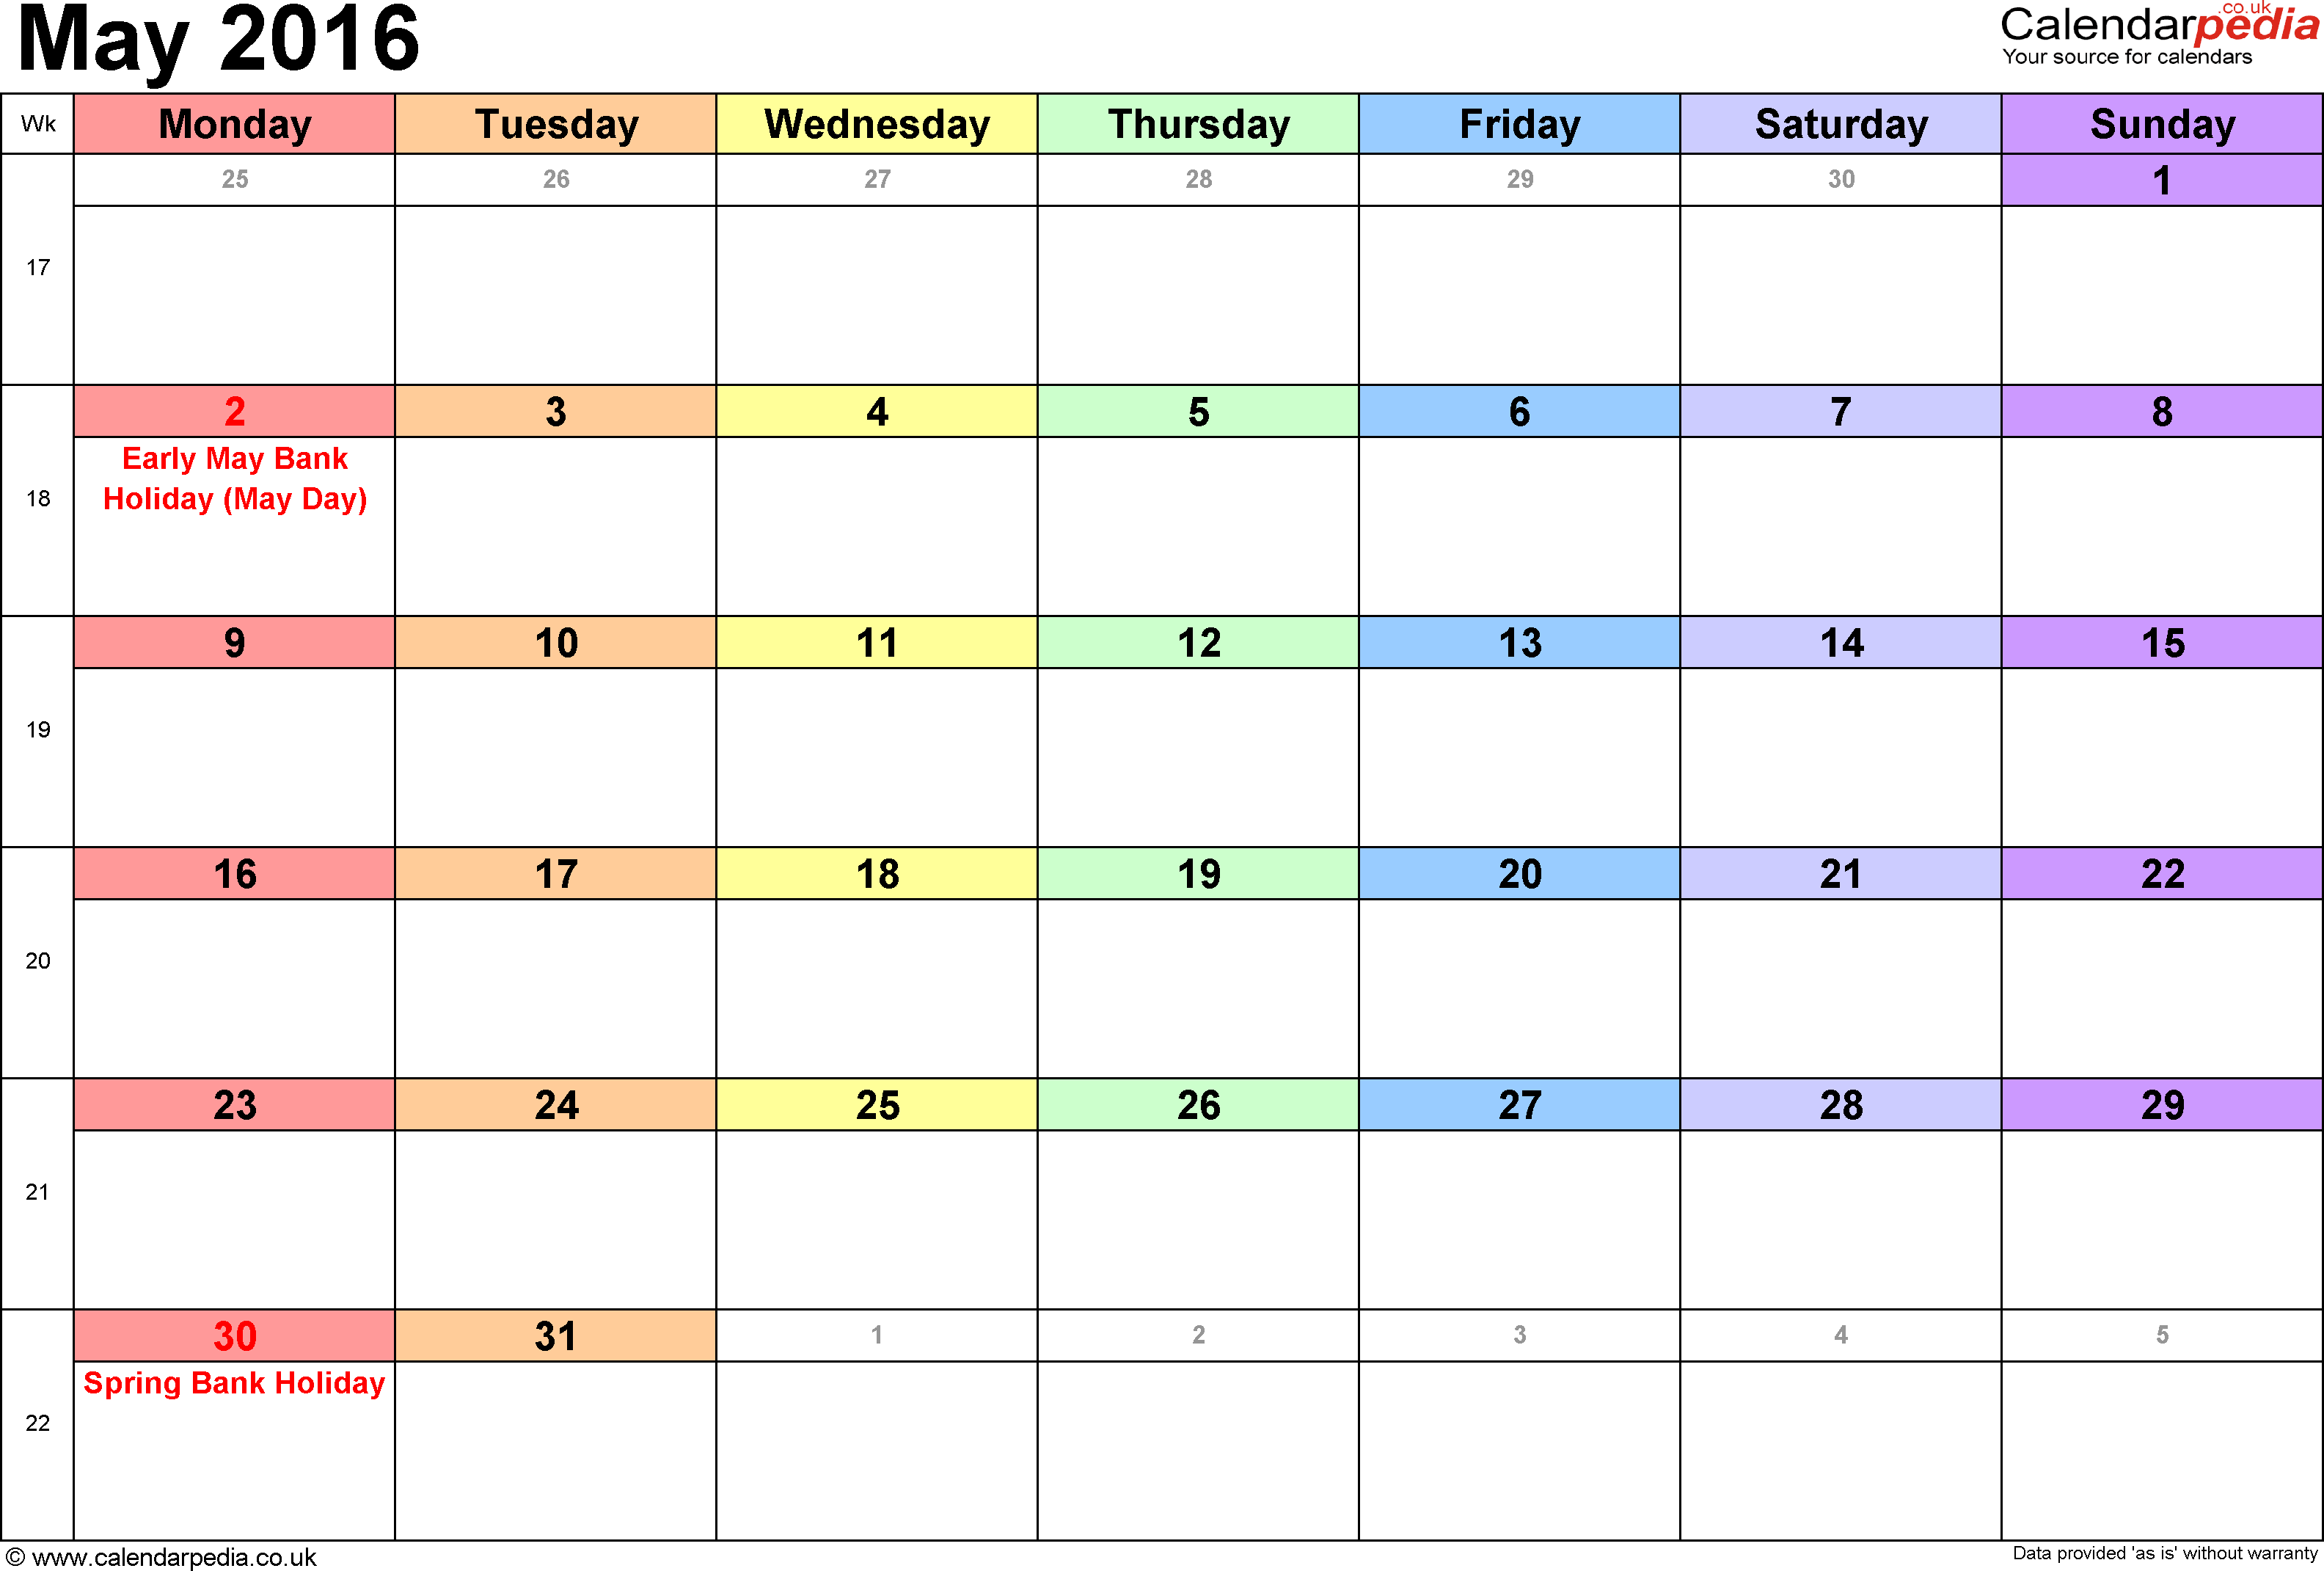 calendar may 2016 landscape orientation 1 page with uk bank holidays and week numbers